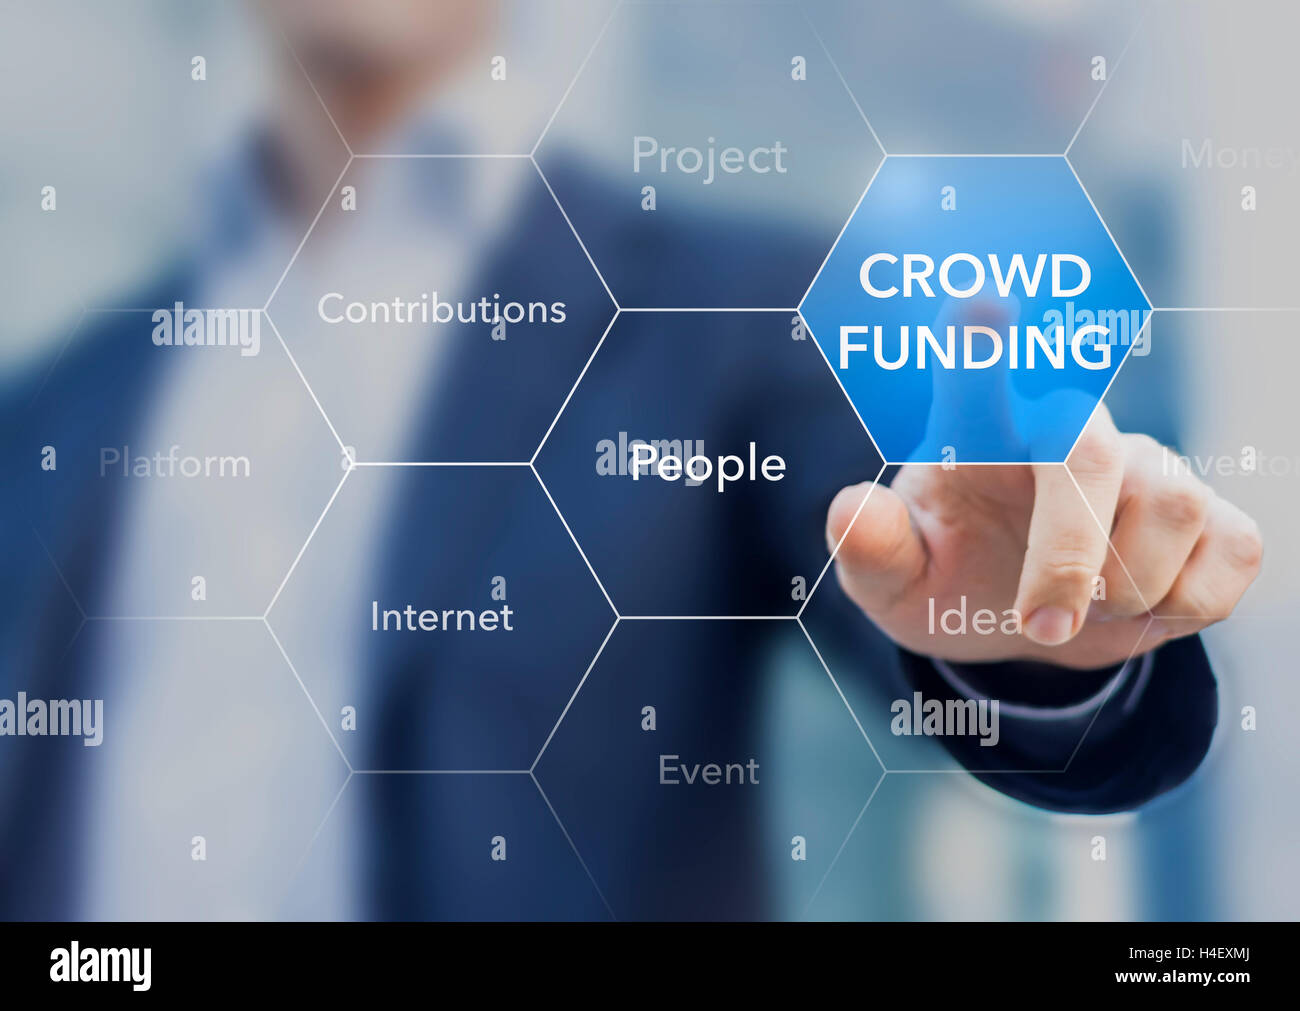 Crowd funding is a successful concept for starting projects start-up companies and business - Stock Image